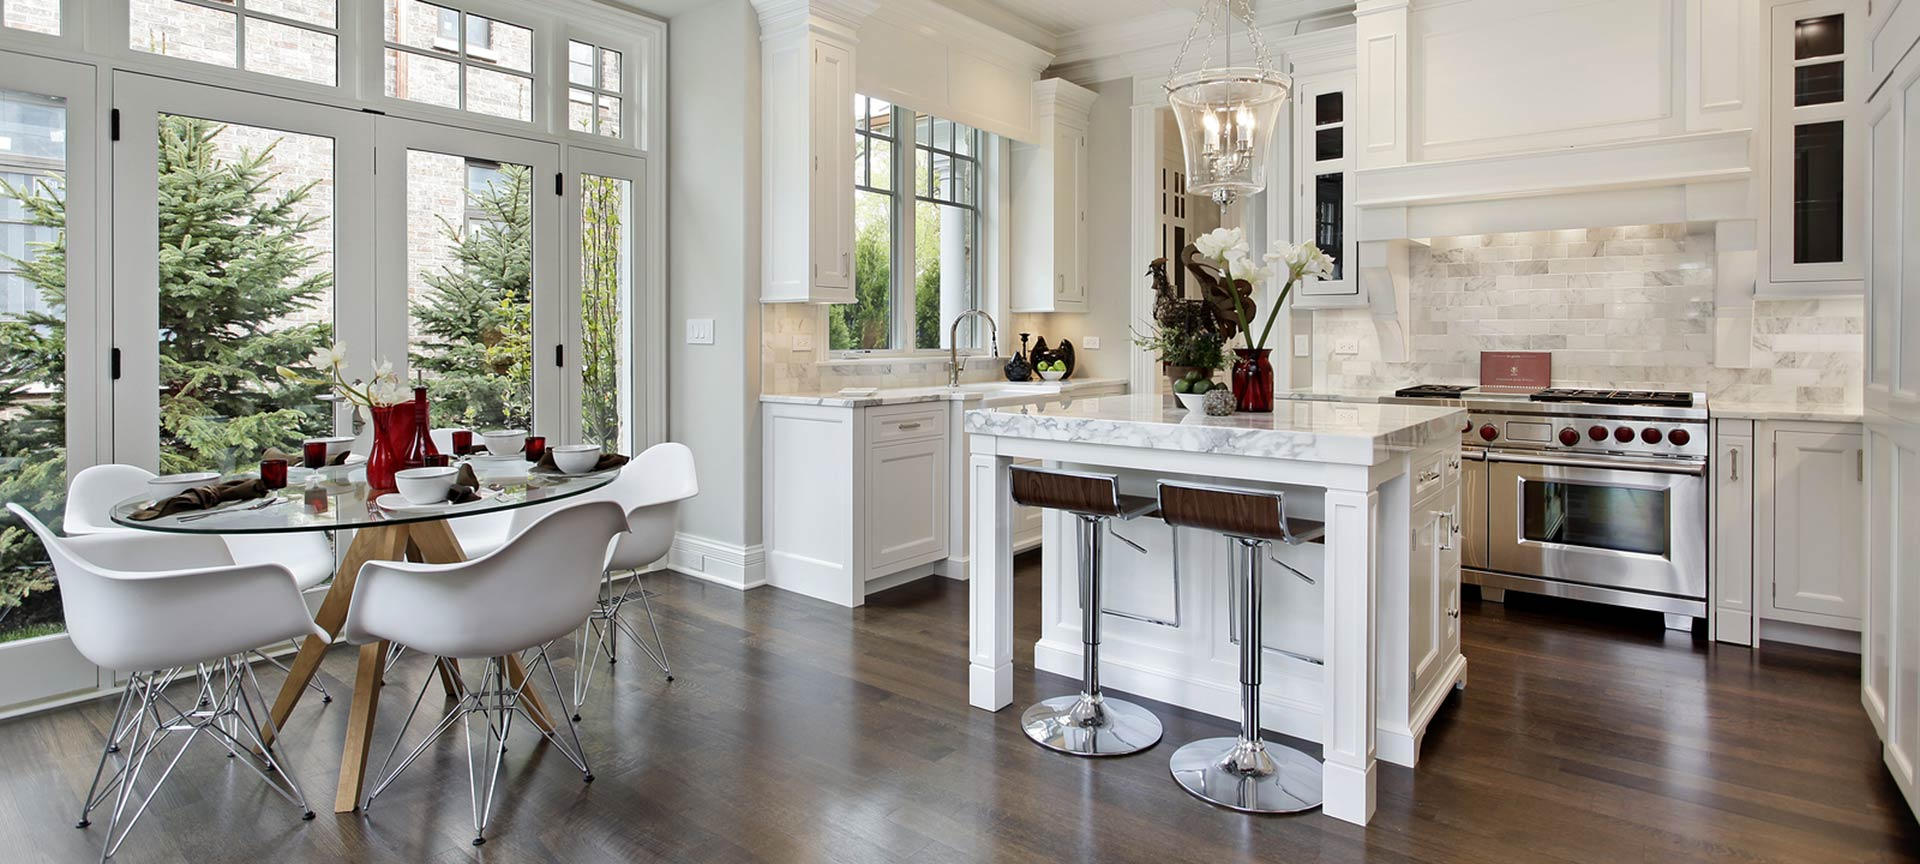 Hottest New Kitchen Remodeling Trends For 2020